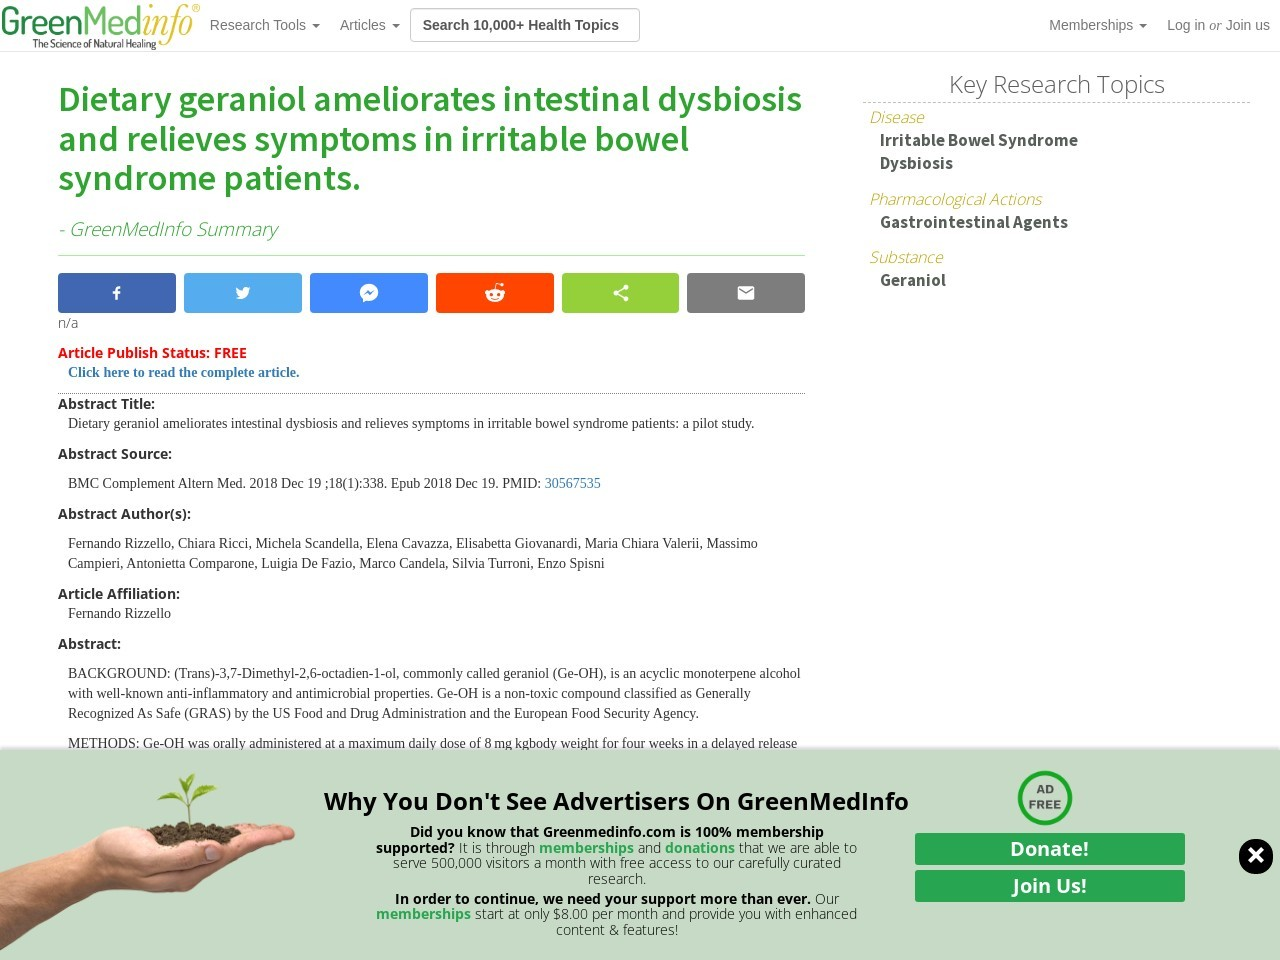 Dietary geraniol ameliorates intestinal dysbiosis and relieves symptoms in irritable bowel syndrome patients.